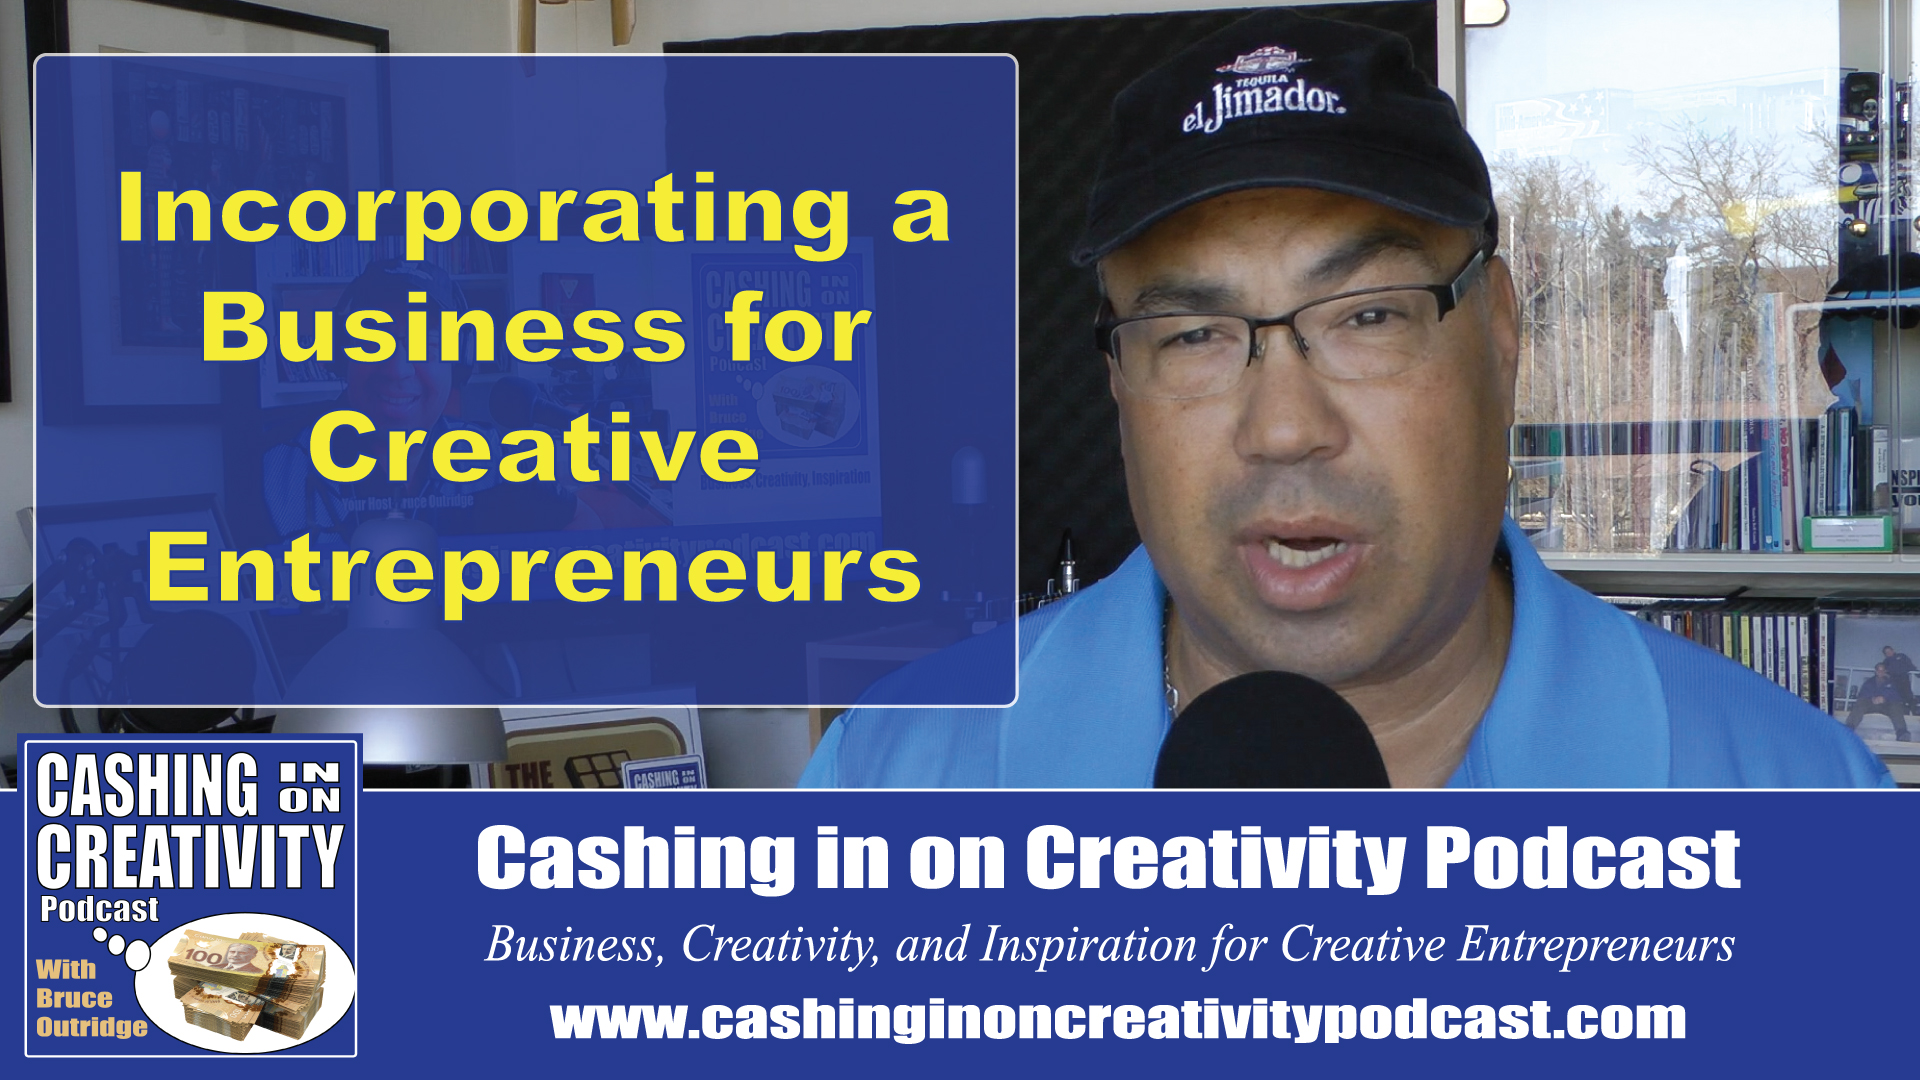 Should you incorporate your business as a creative entrepreneur?